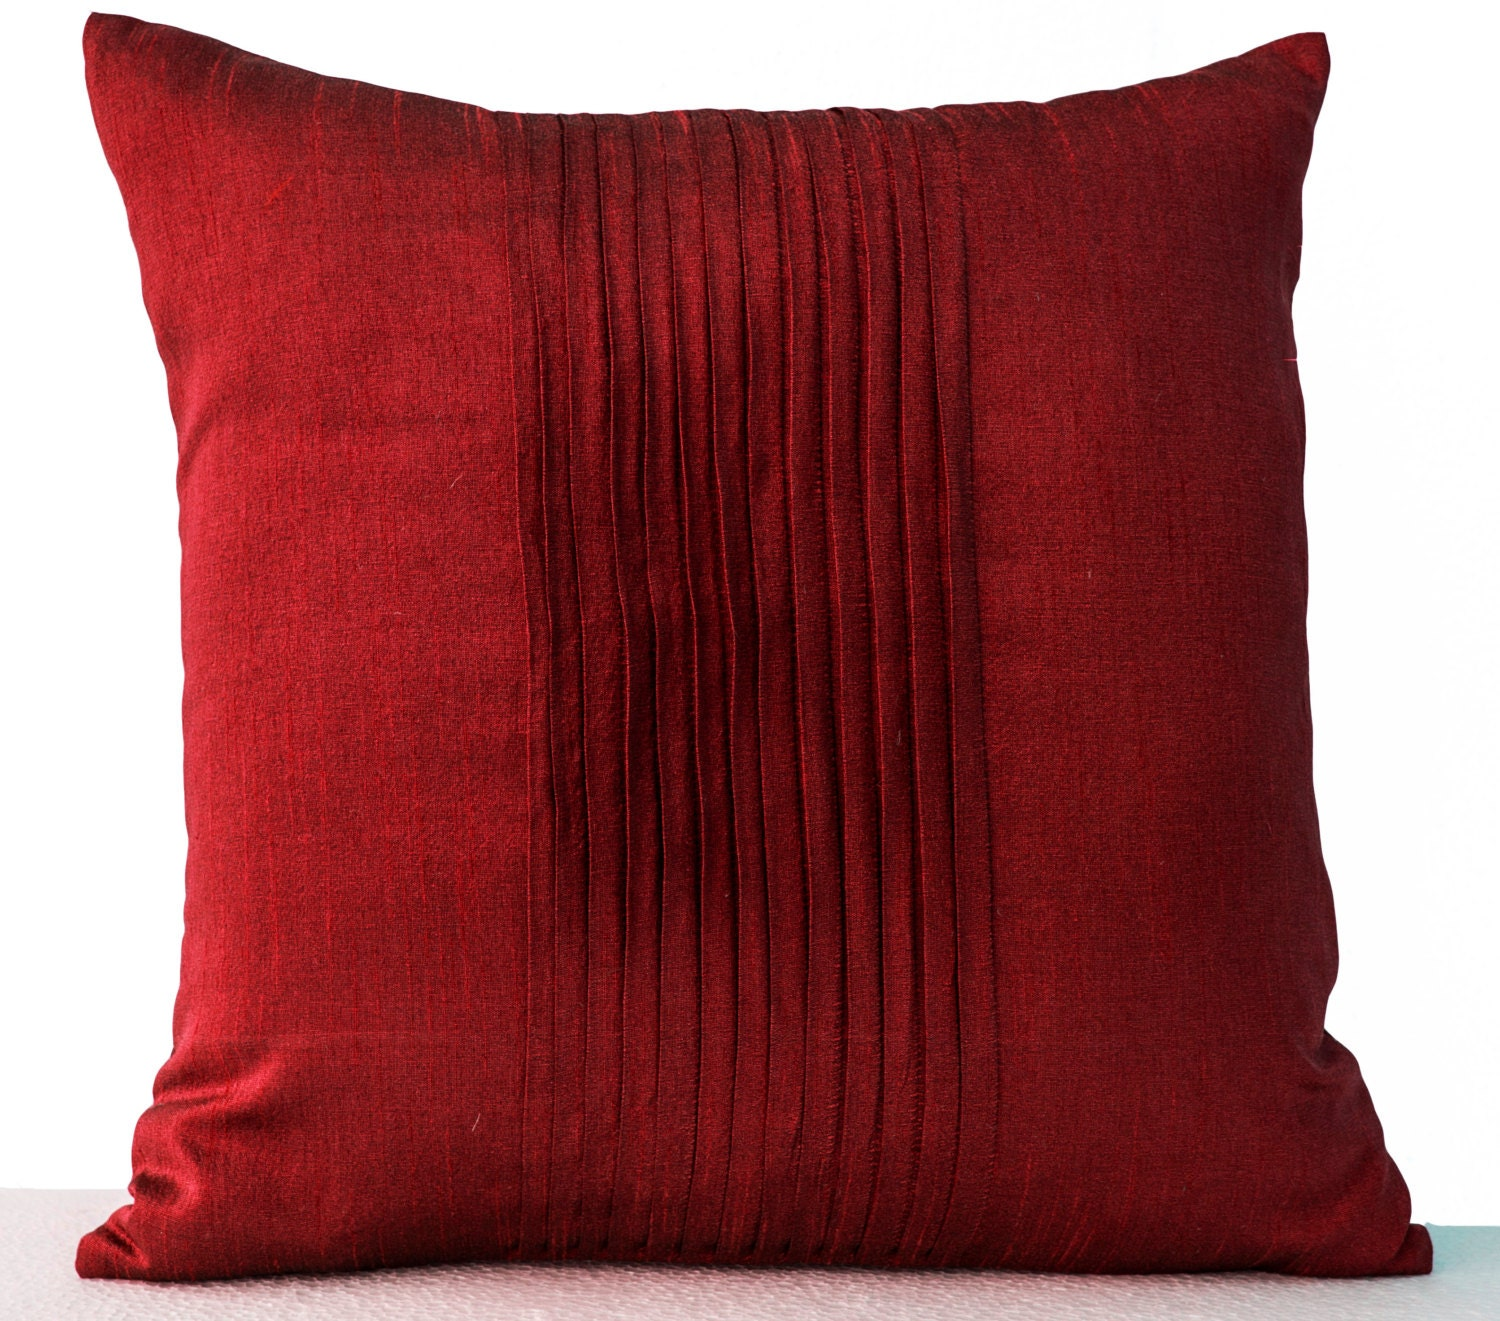 Decorative Pillows For Red Sofa : Throw pillows in red art silk Attractive cushion in rippled